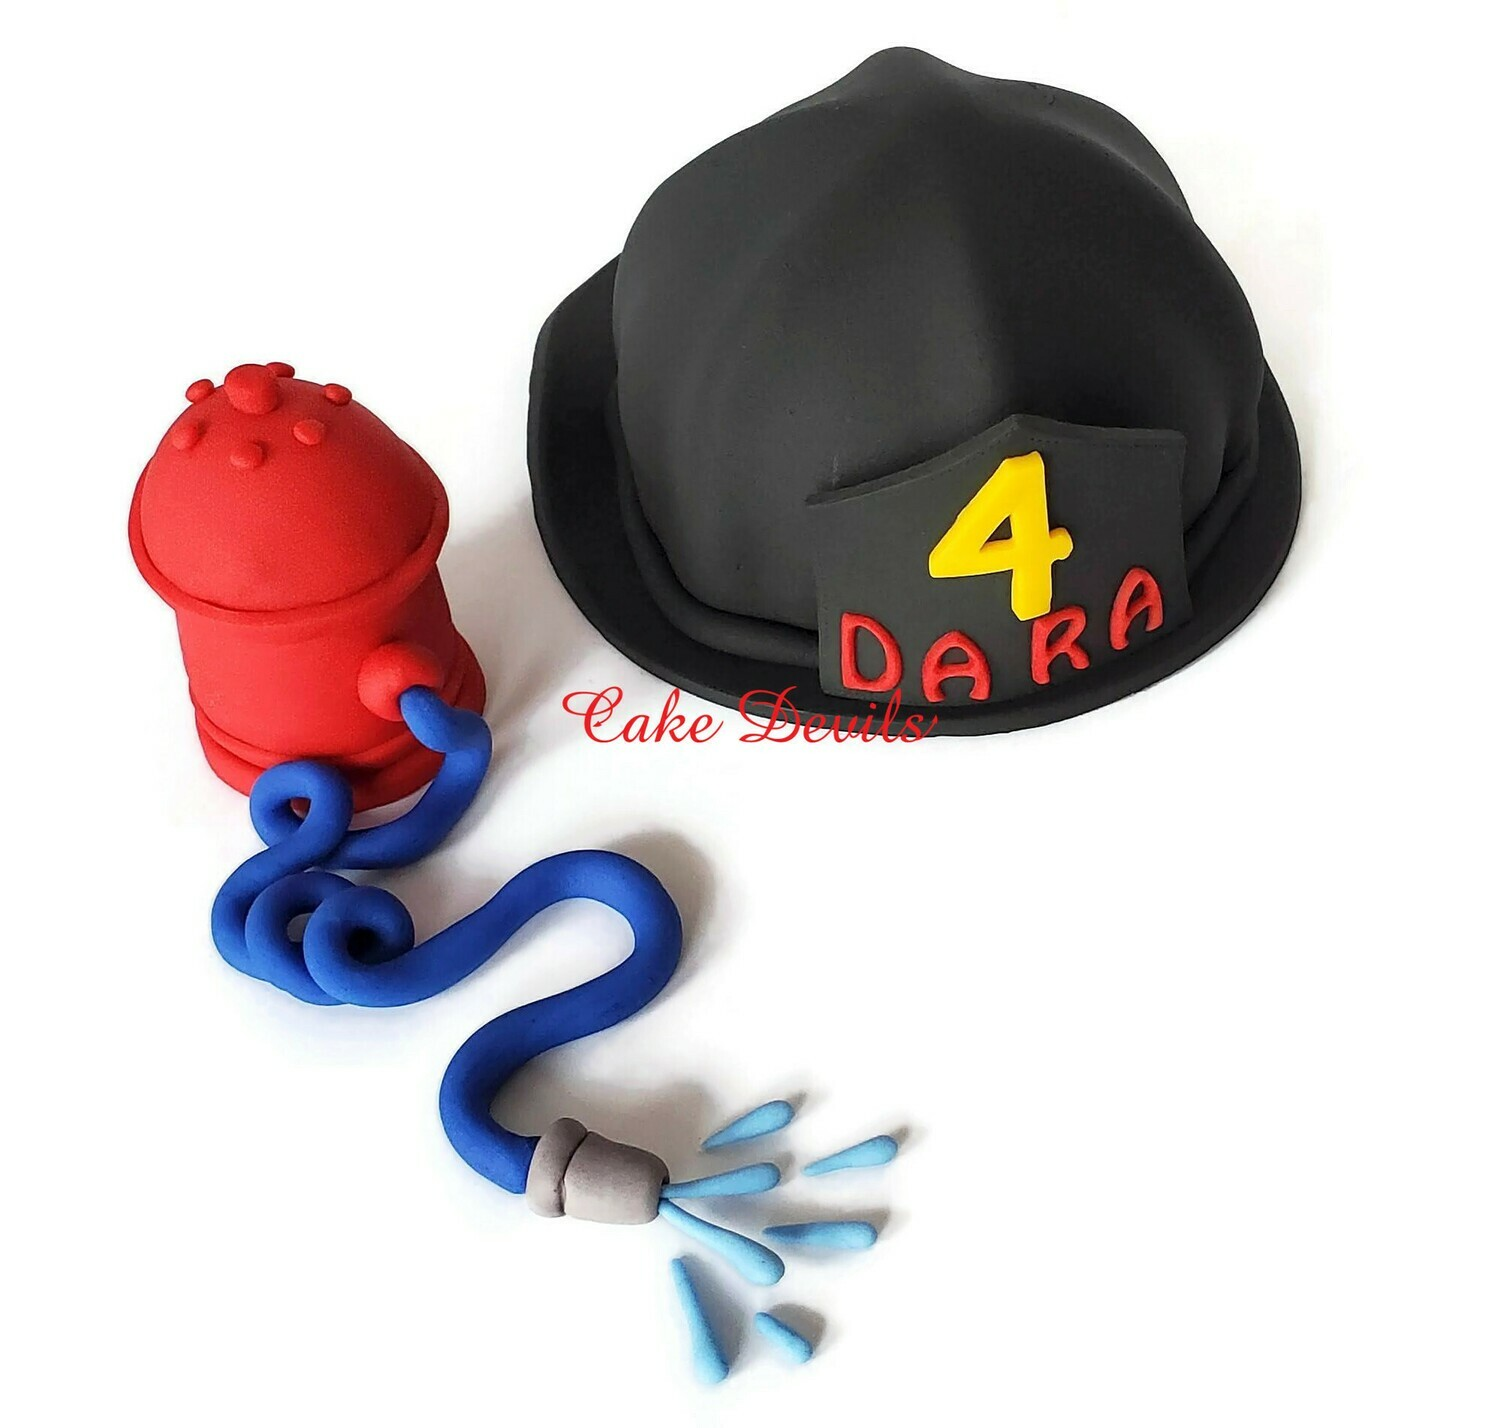 Firefighter Cake Toppers, Fire Hat and Fire Hydrant